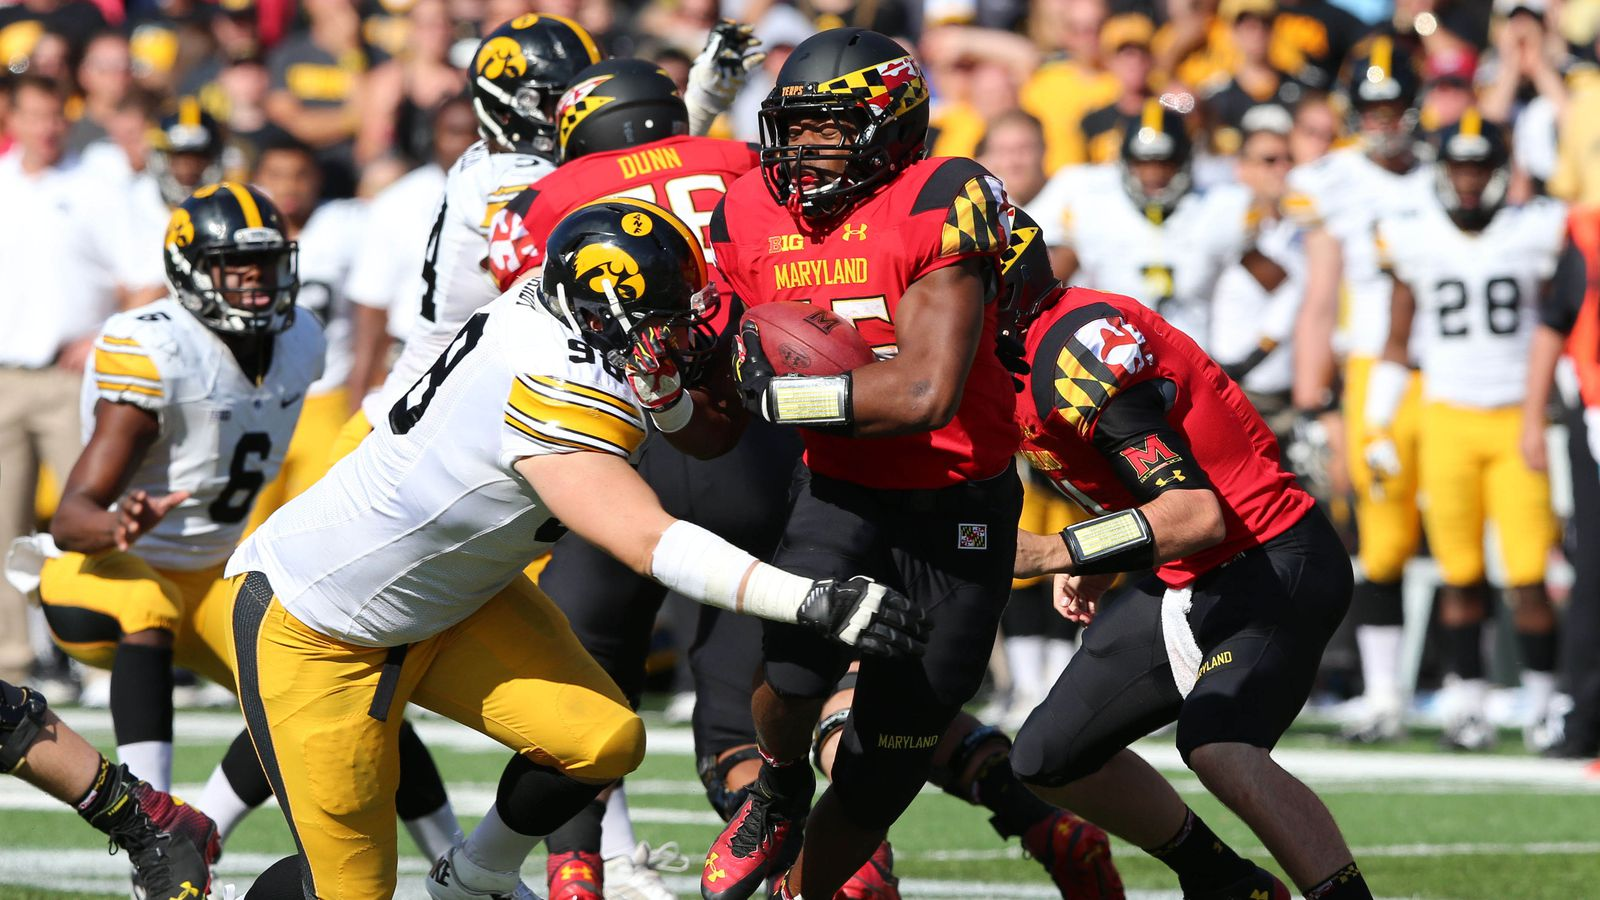 Maryland looks for an encore of last year's dominance vs. Iowa - Testudo Times